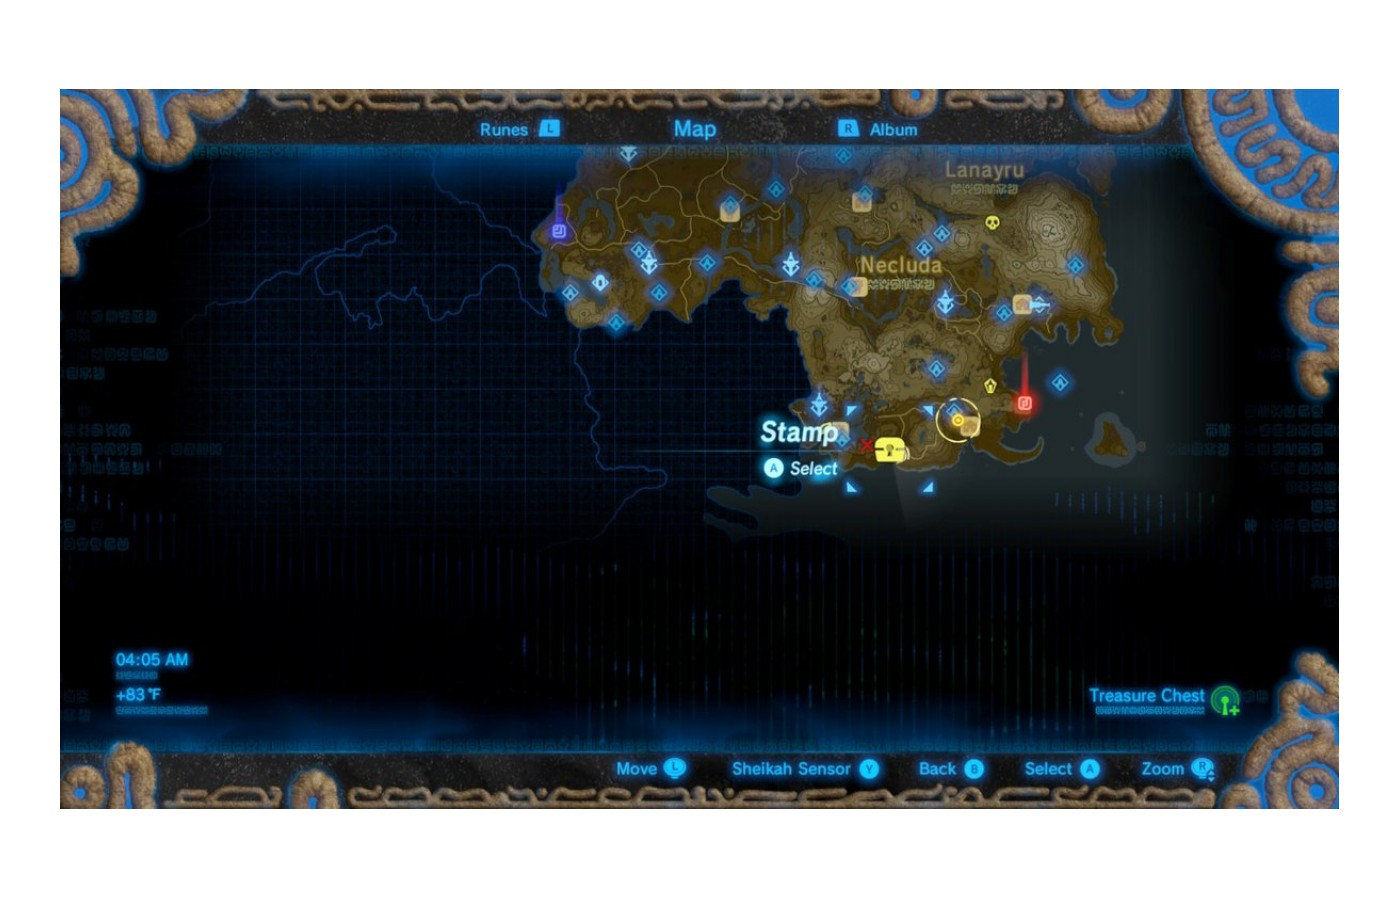 The map can be opened any number of ways and can be explored differently each playthrough.